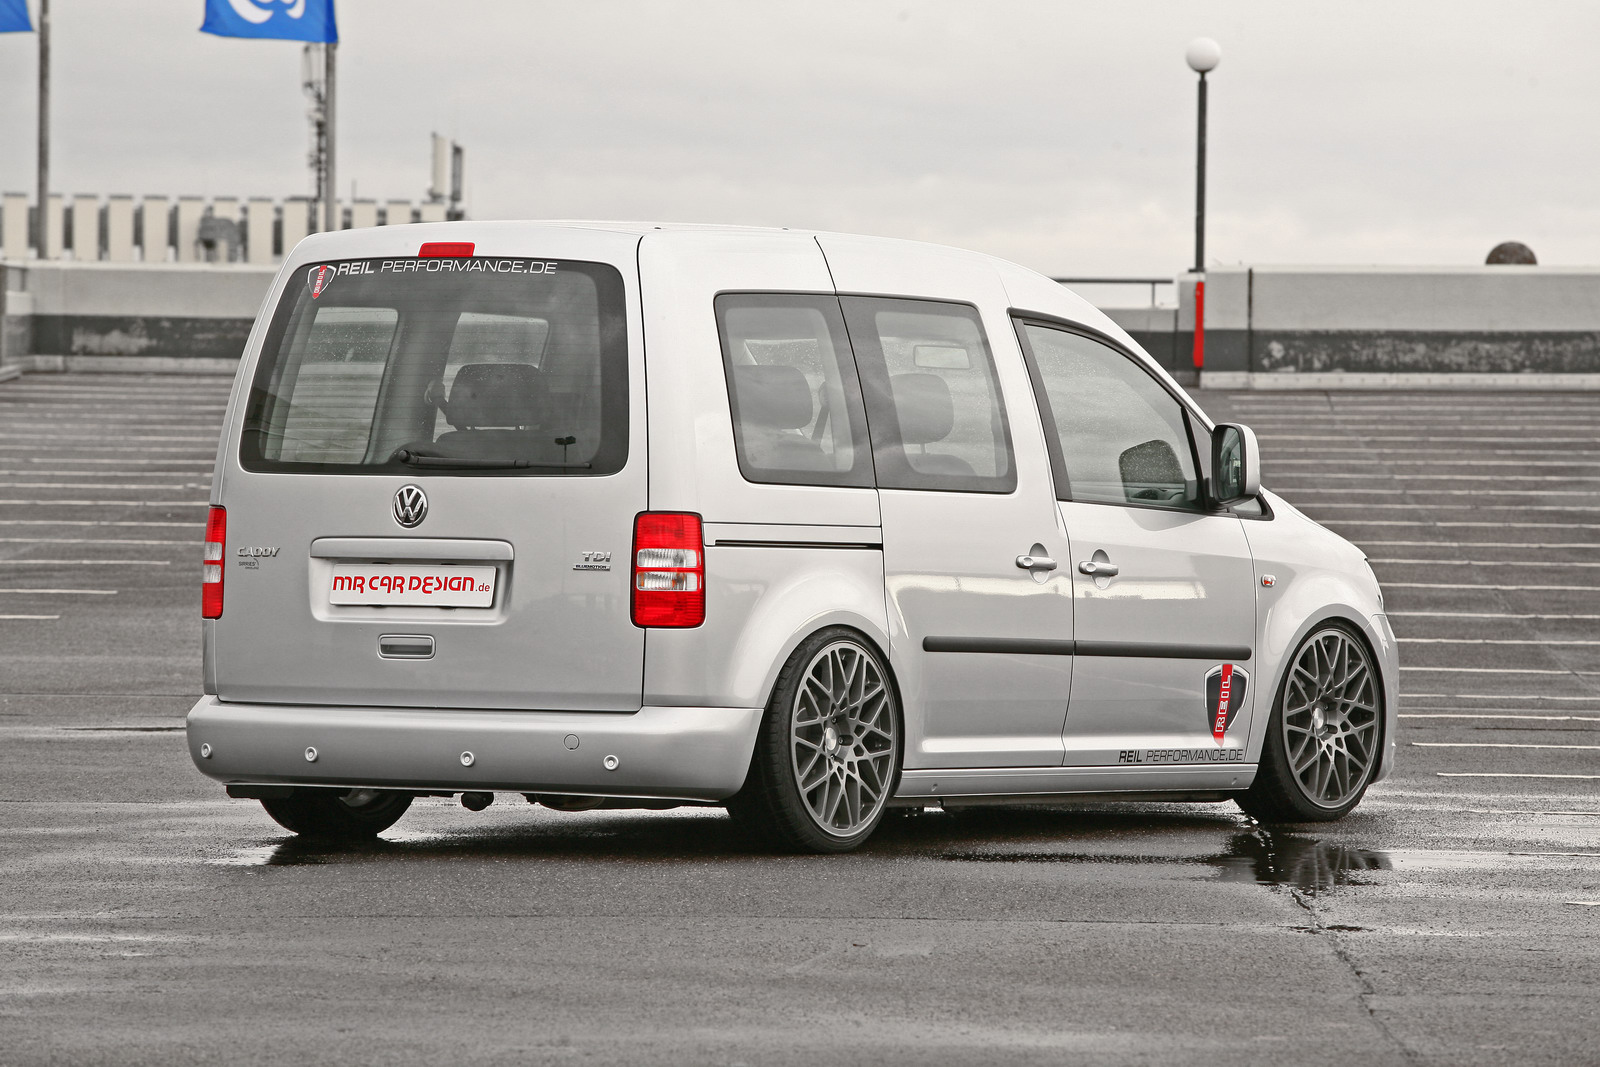 MR Car Design Volkswagen Caddy Rides Low Autoevolution